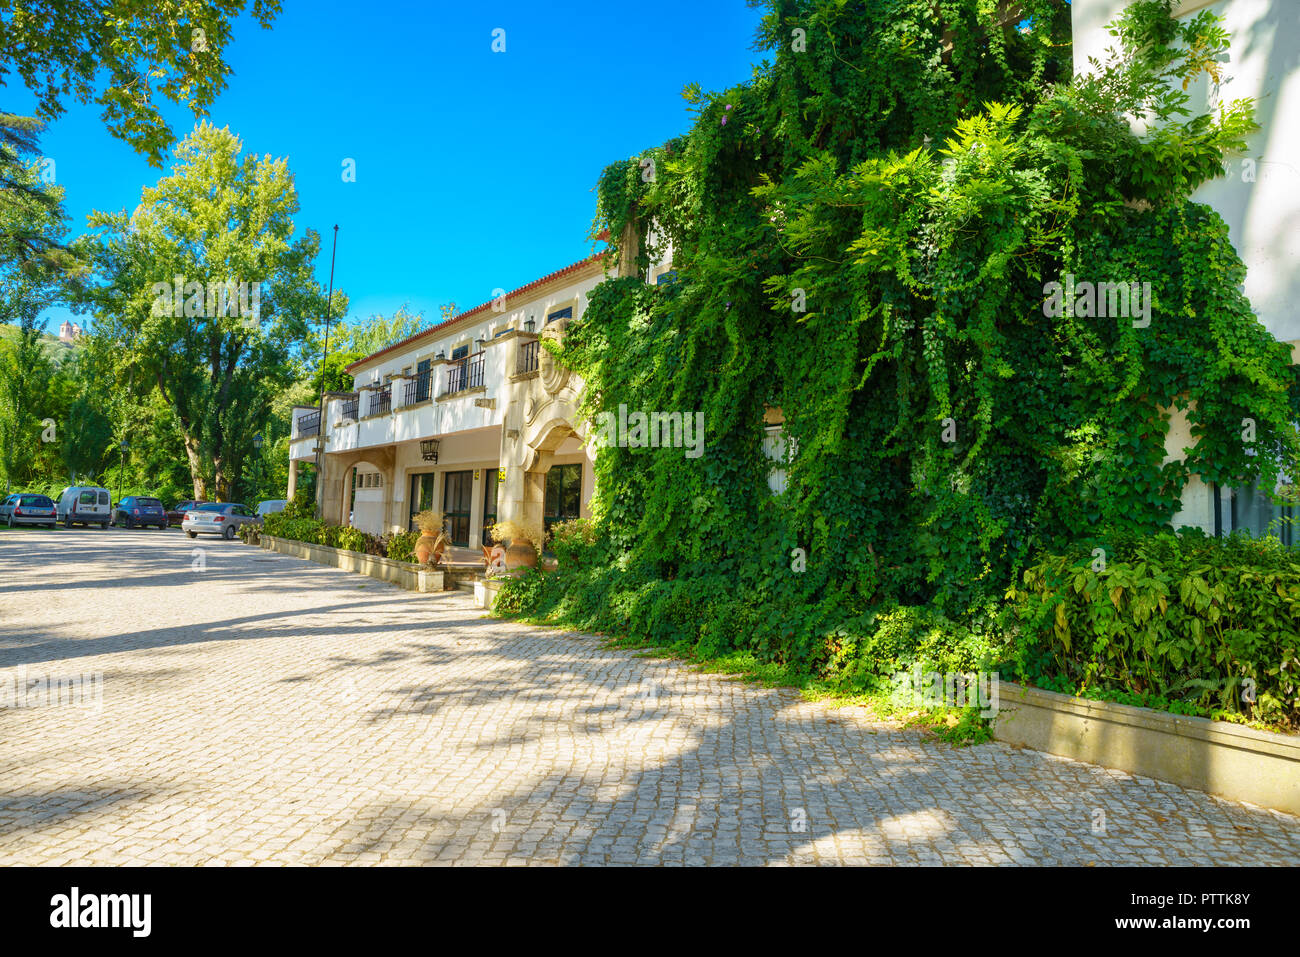 window in the wall of an old house overgrown by green wild grapes. Green plants on building facade. Nature texture Stock Photo